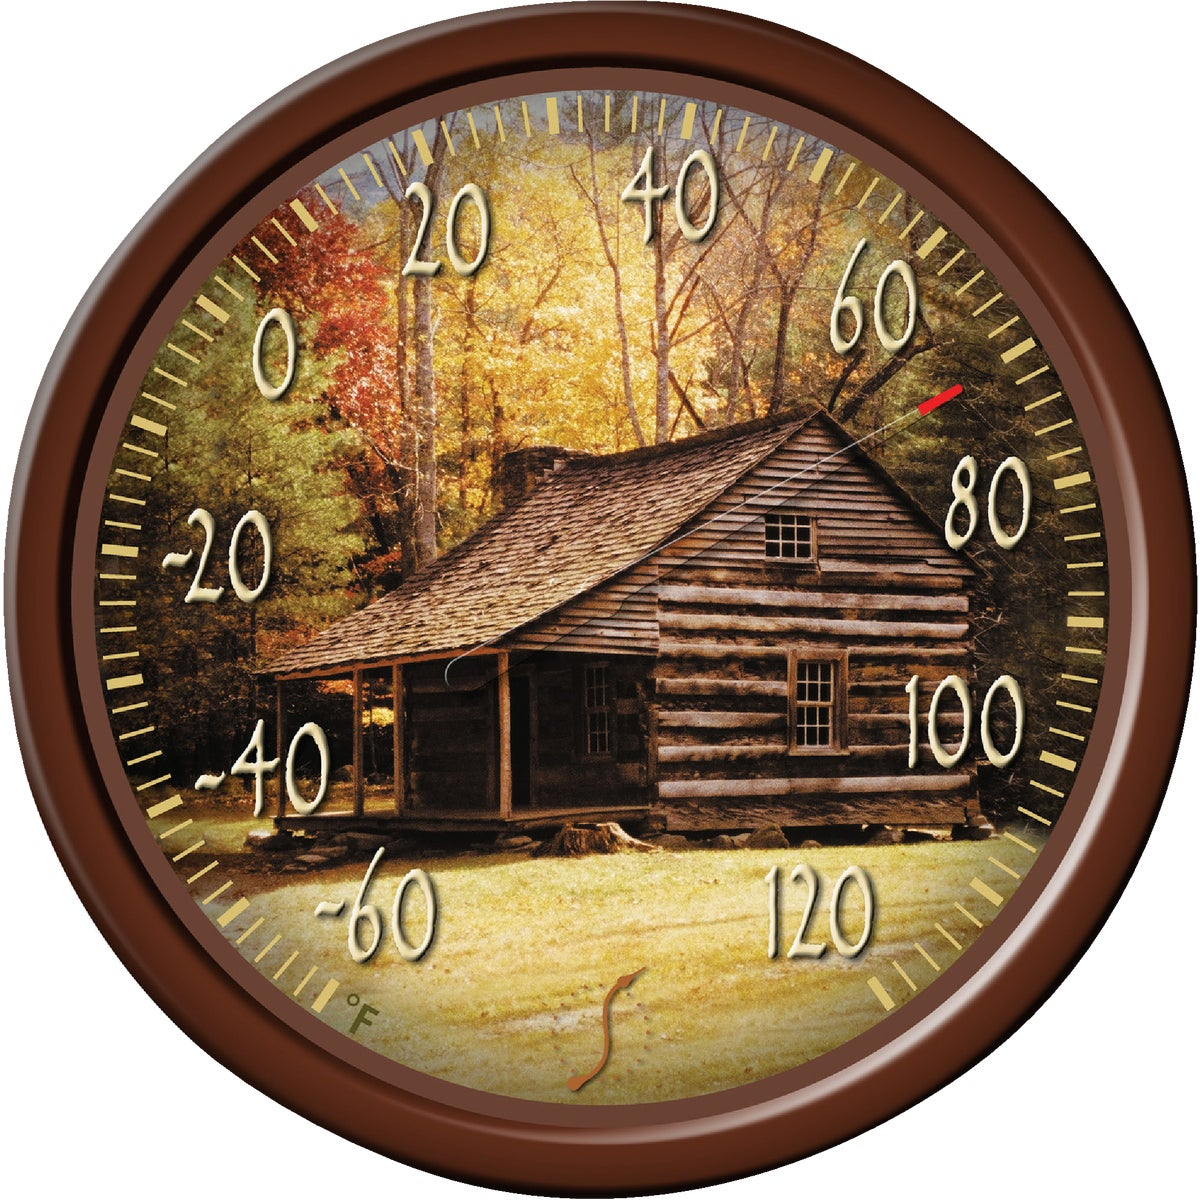 LODGE DIAL THERMOMETER